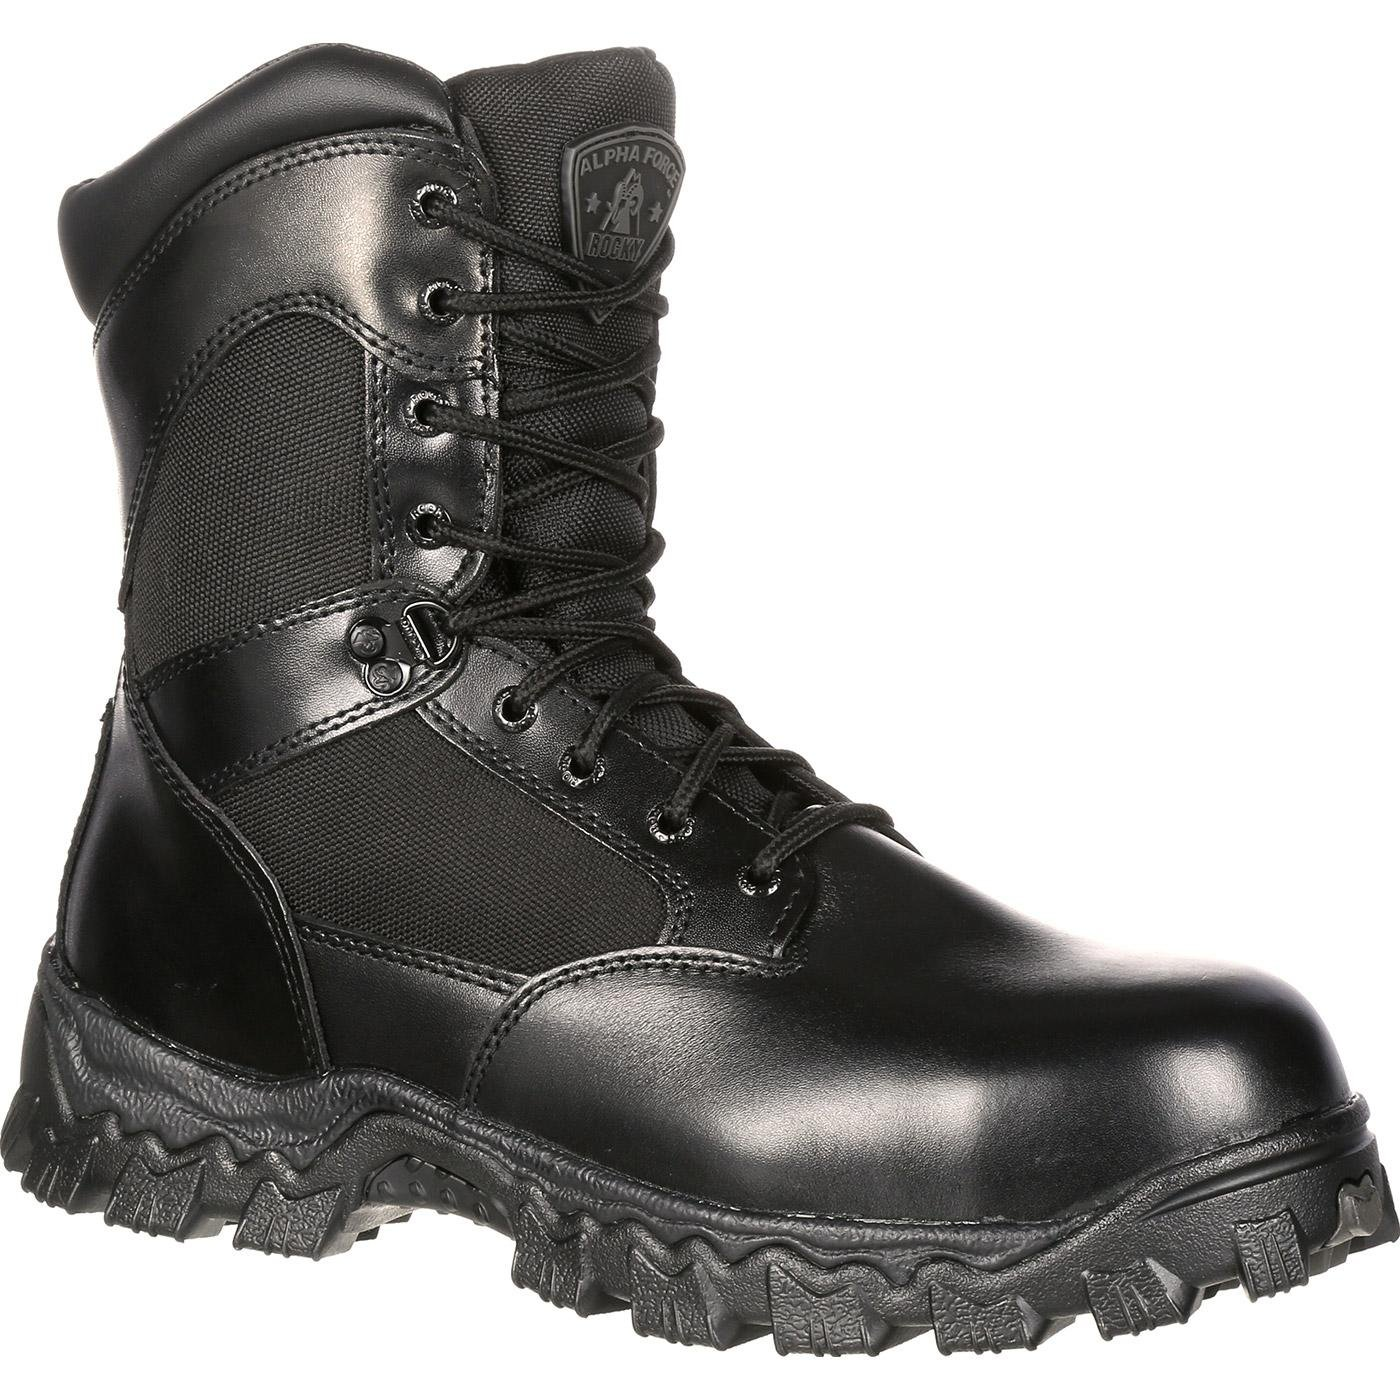 ROCKY Men's RKYD011 Military and Tactical Boot, Black, 10.5 M US by ROCKY